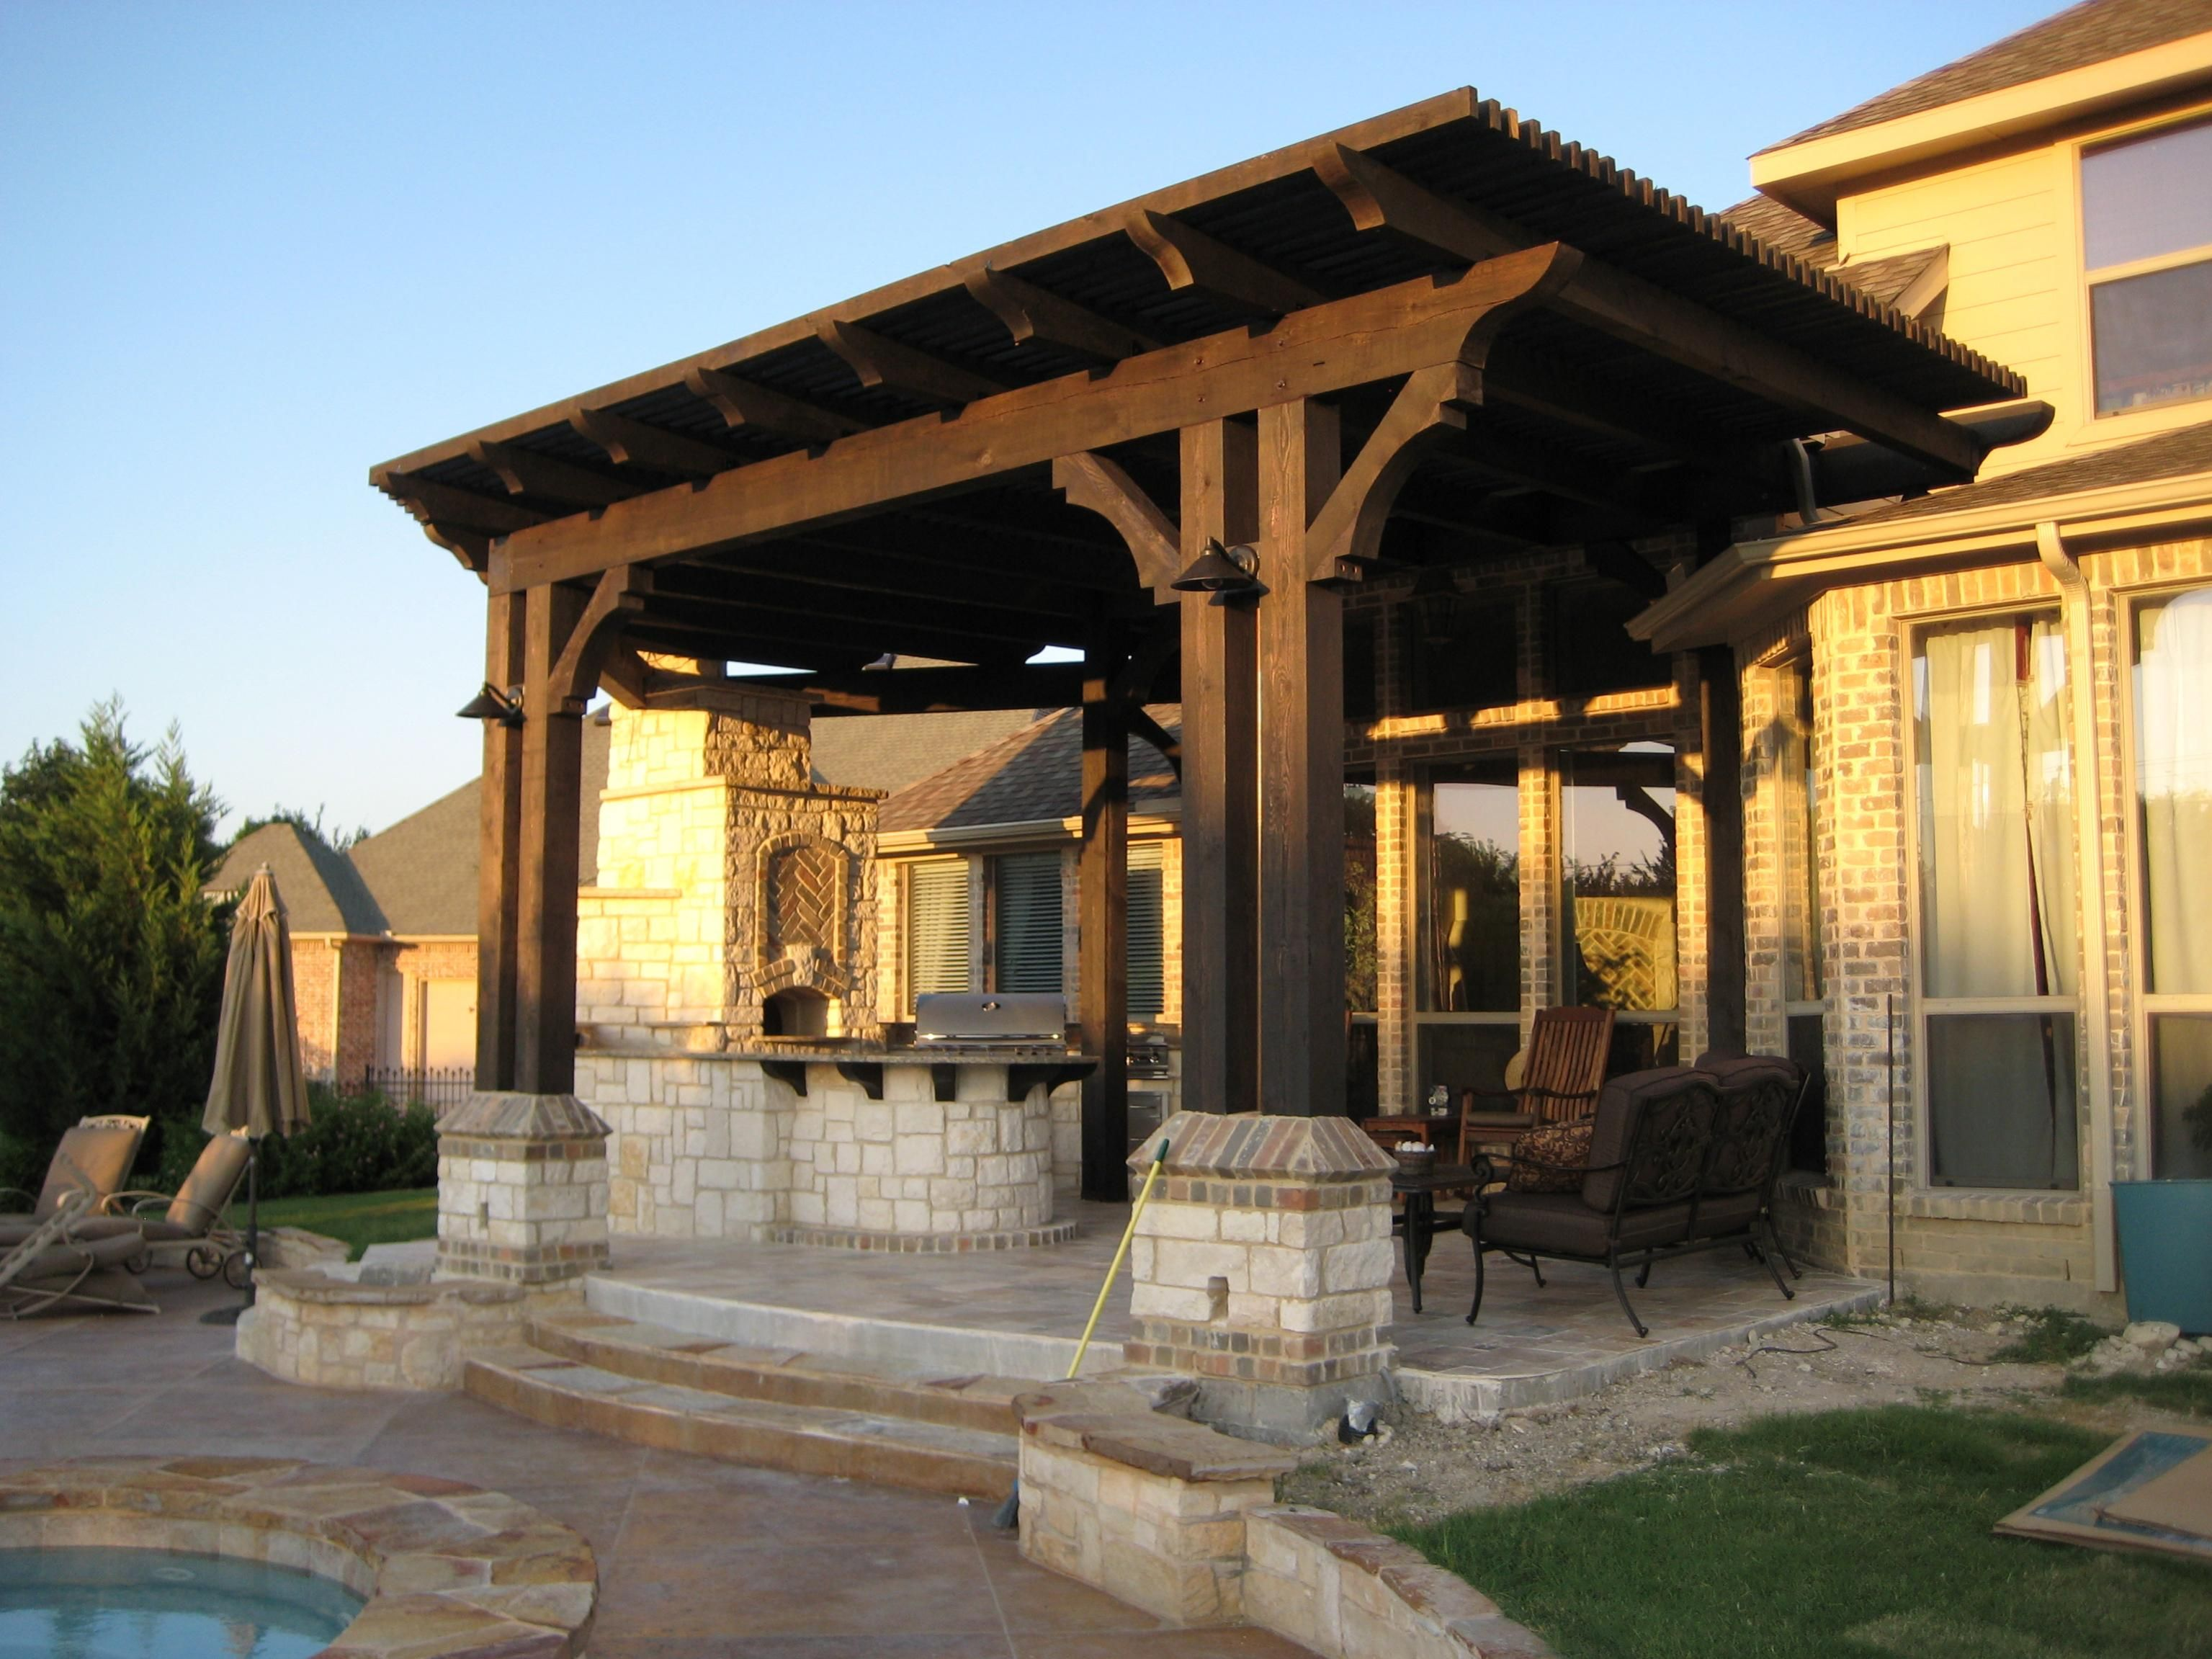 Arbor Designs Ideas ideas patio arbors patio arbor pictures 17 Best Images About Diy Pergola Ideas On Pinterest Decks Backyards And Diy Pergola Arbor Arbor Designs Ideas